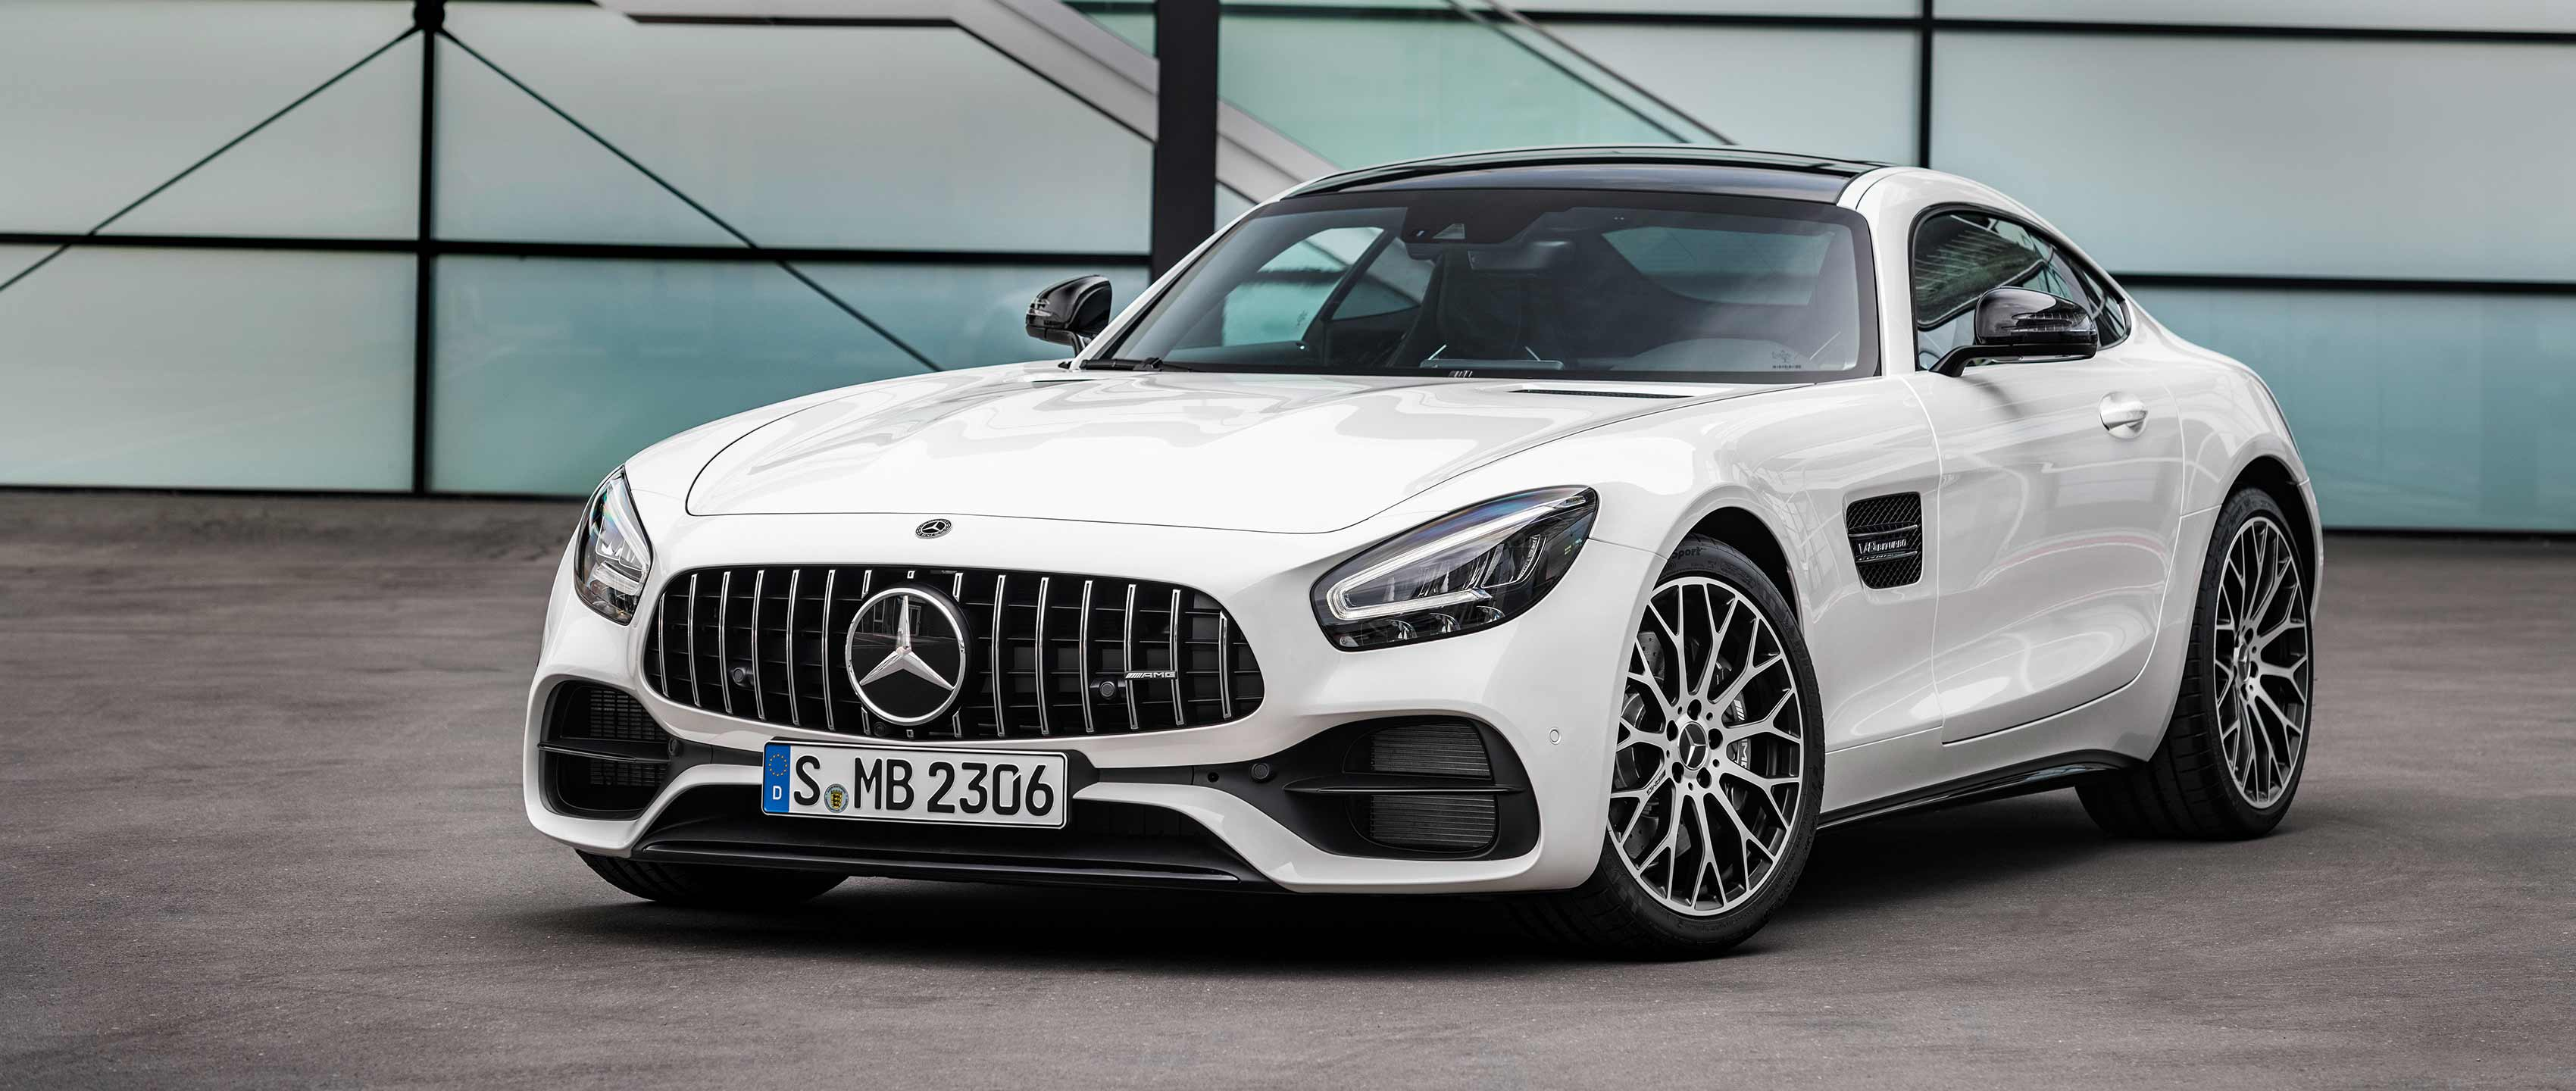 18 All New Mercedes Amg Gt 2019 Style for Mercedes Amg Gt 2019